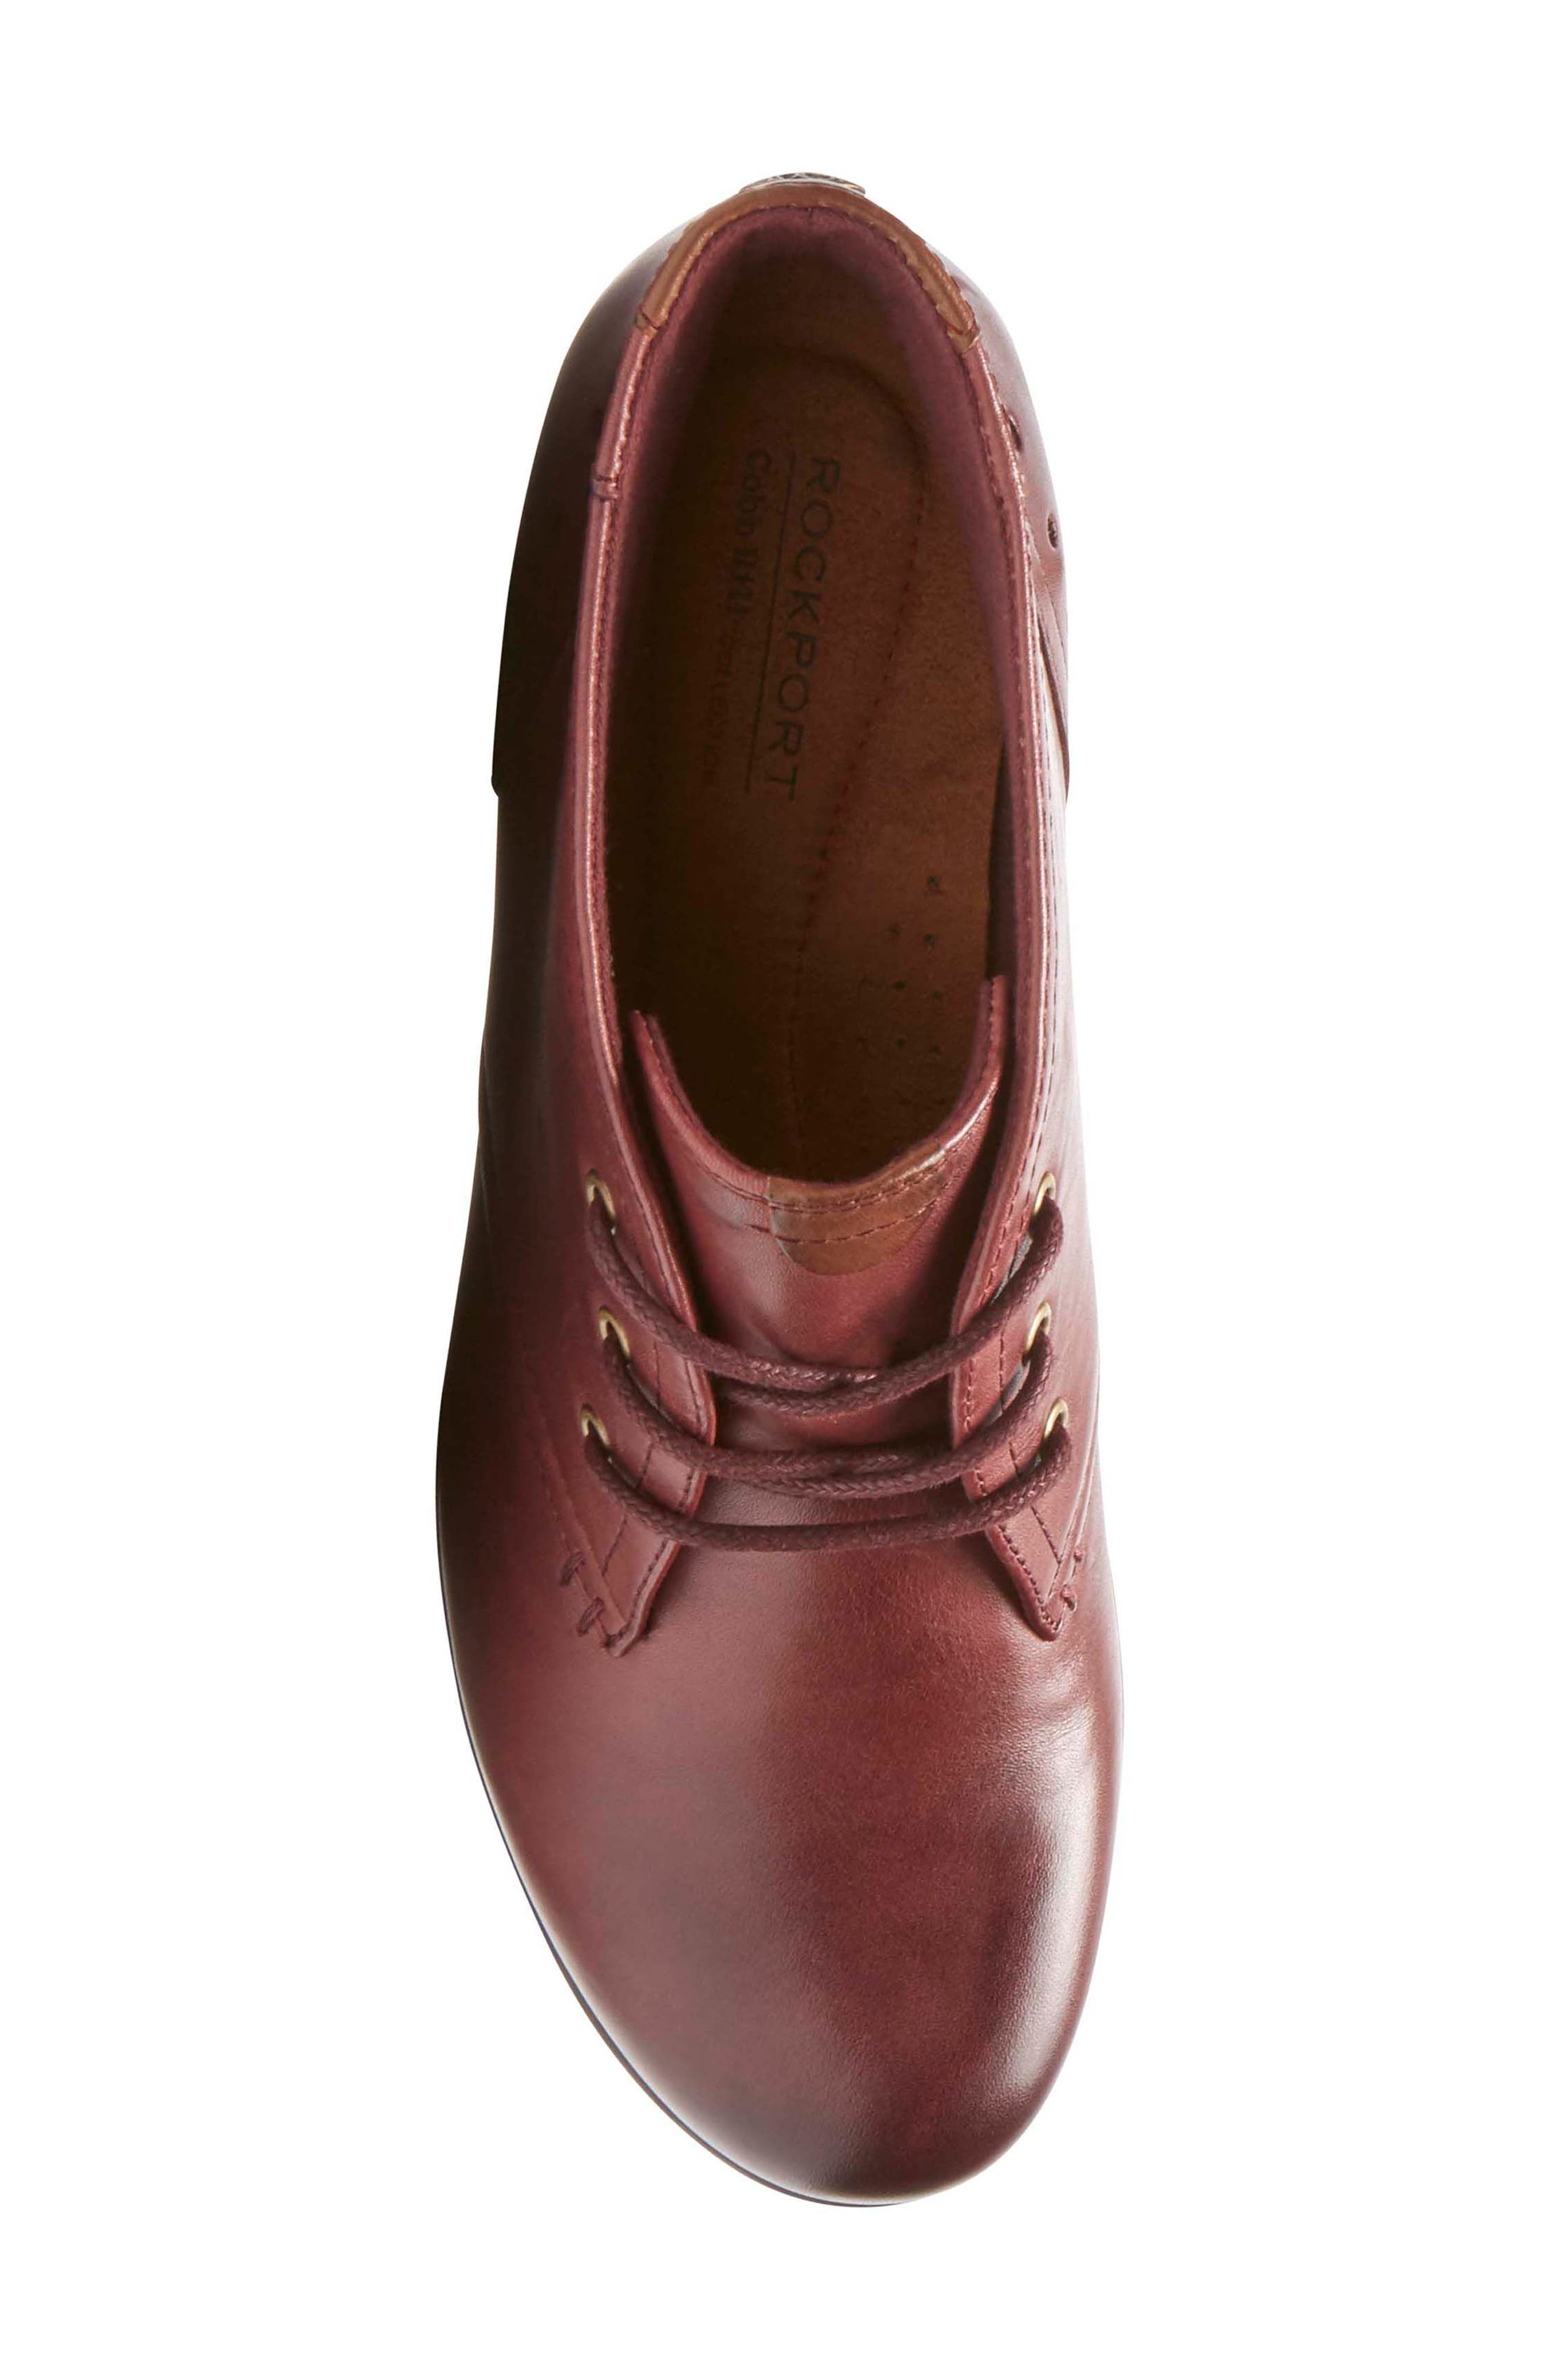 Aria Leather Boot,                             Alternate thumbnail 5, color,                             MERLOT LEATHER